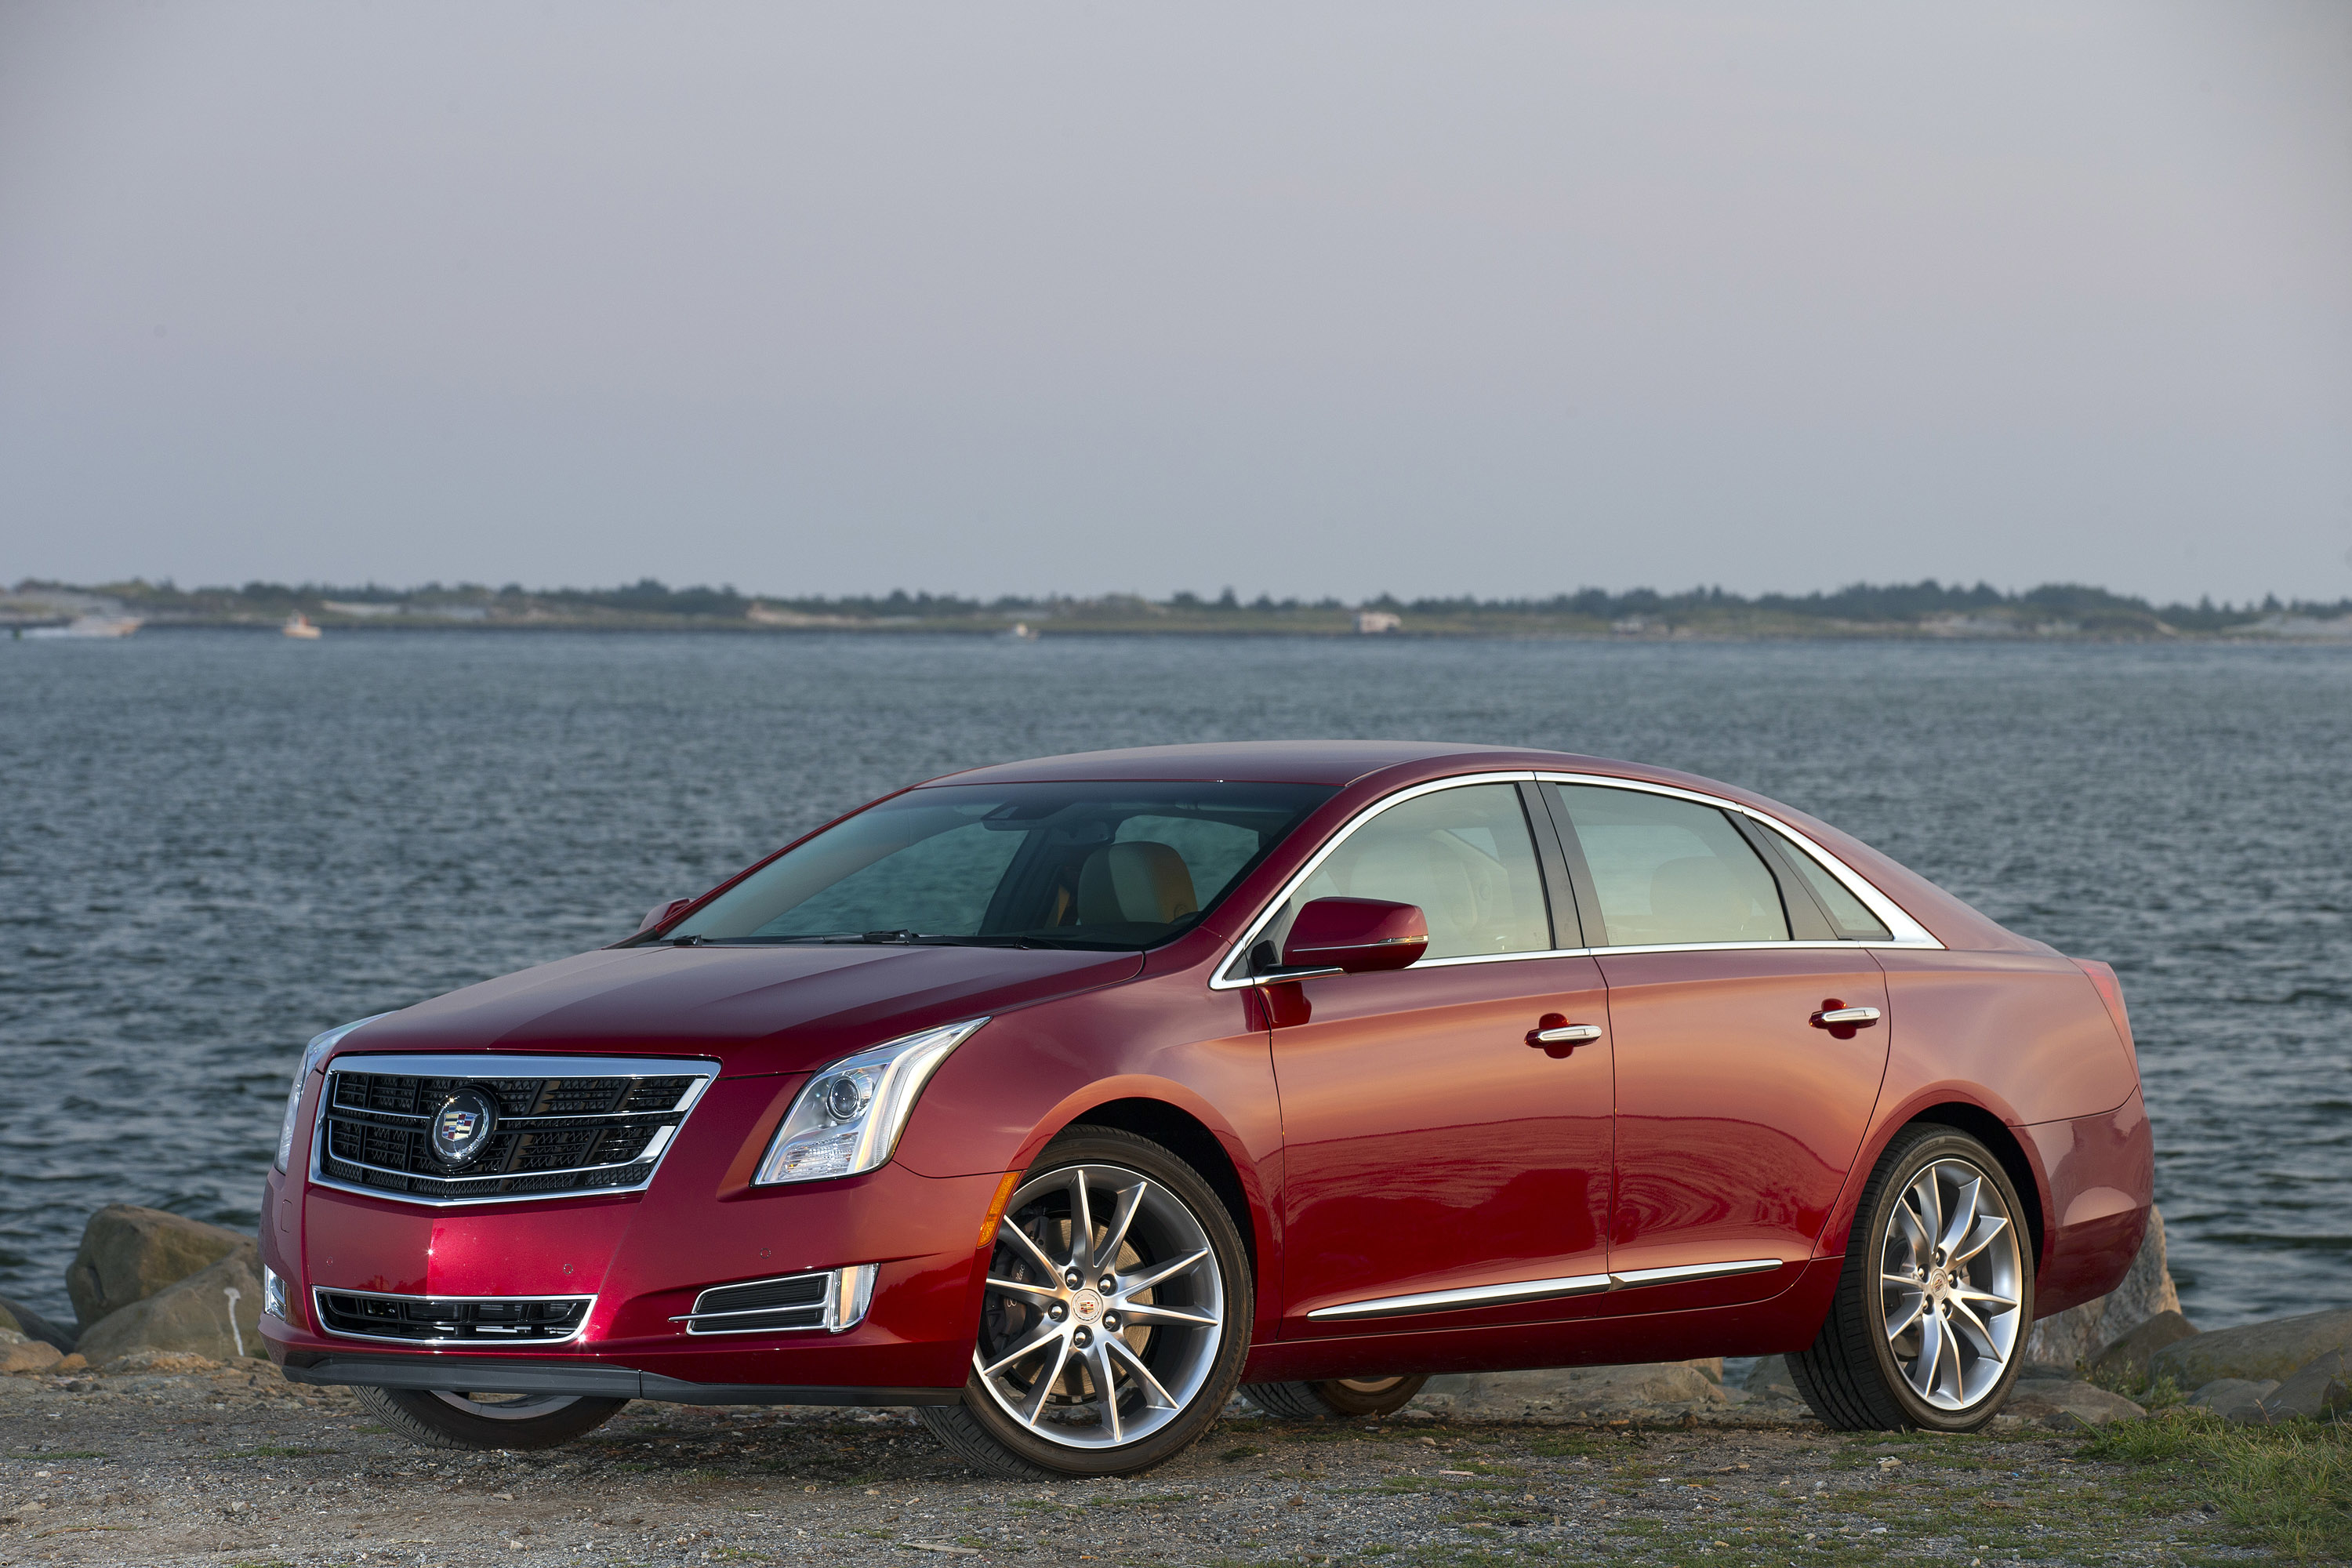 rock drive xts like august vsport city media turbo photo twin a is prince star new cadillac york sexy gaywheels richard